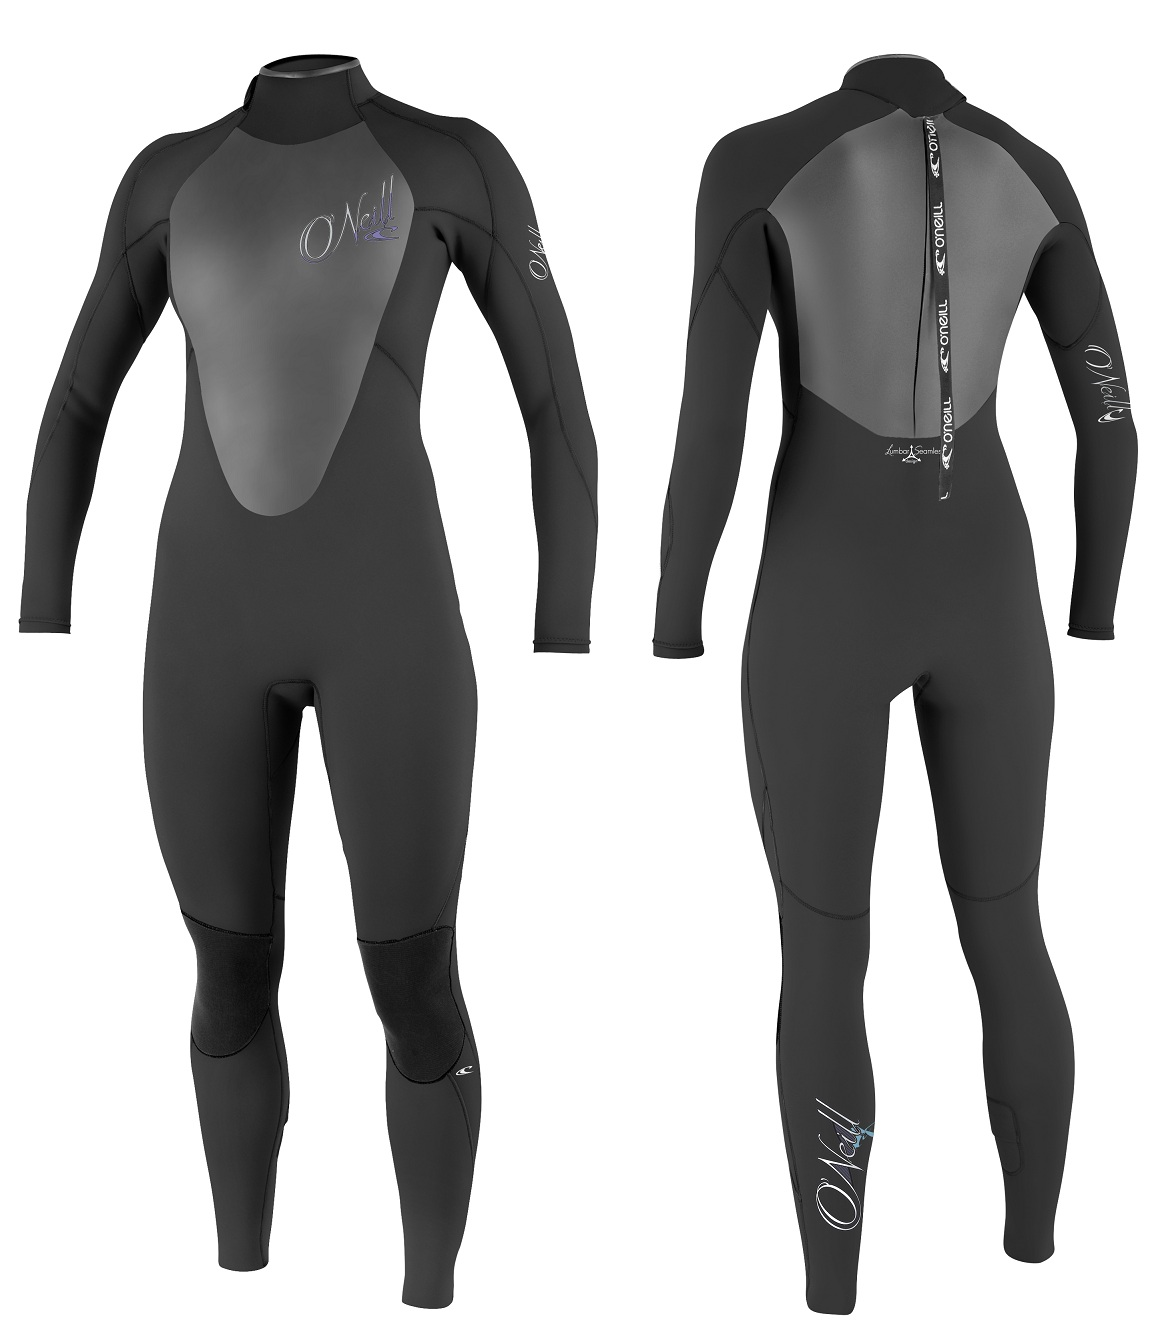 O'Neill Womens Epic II 3/2mm Wetsuit - 3362-A10